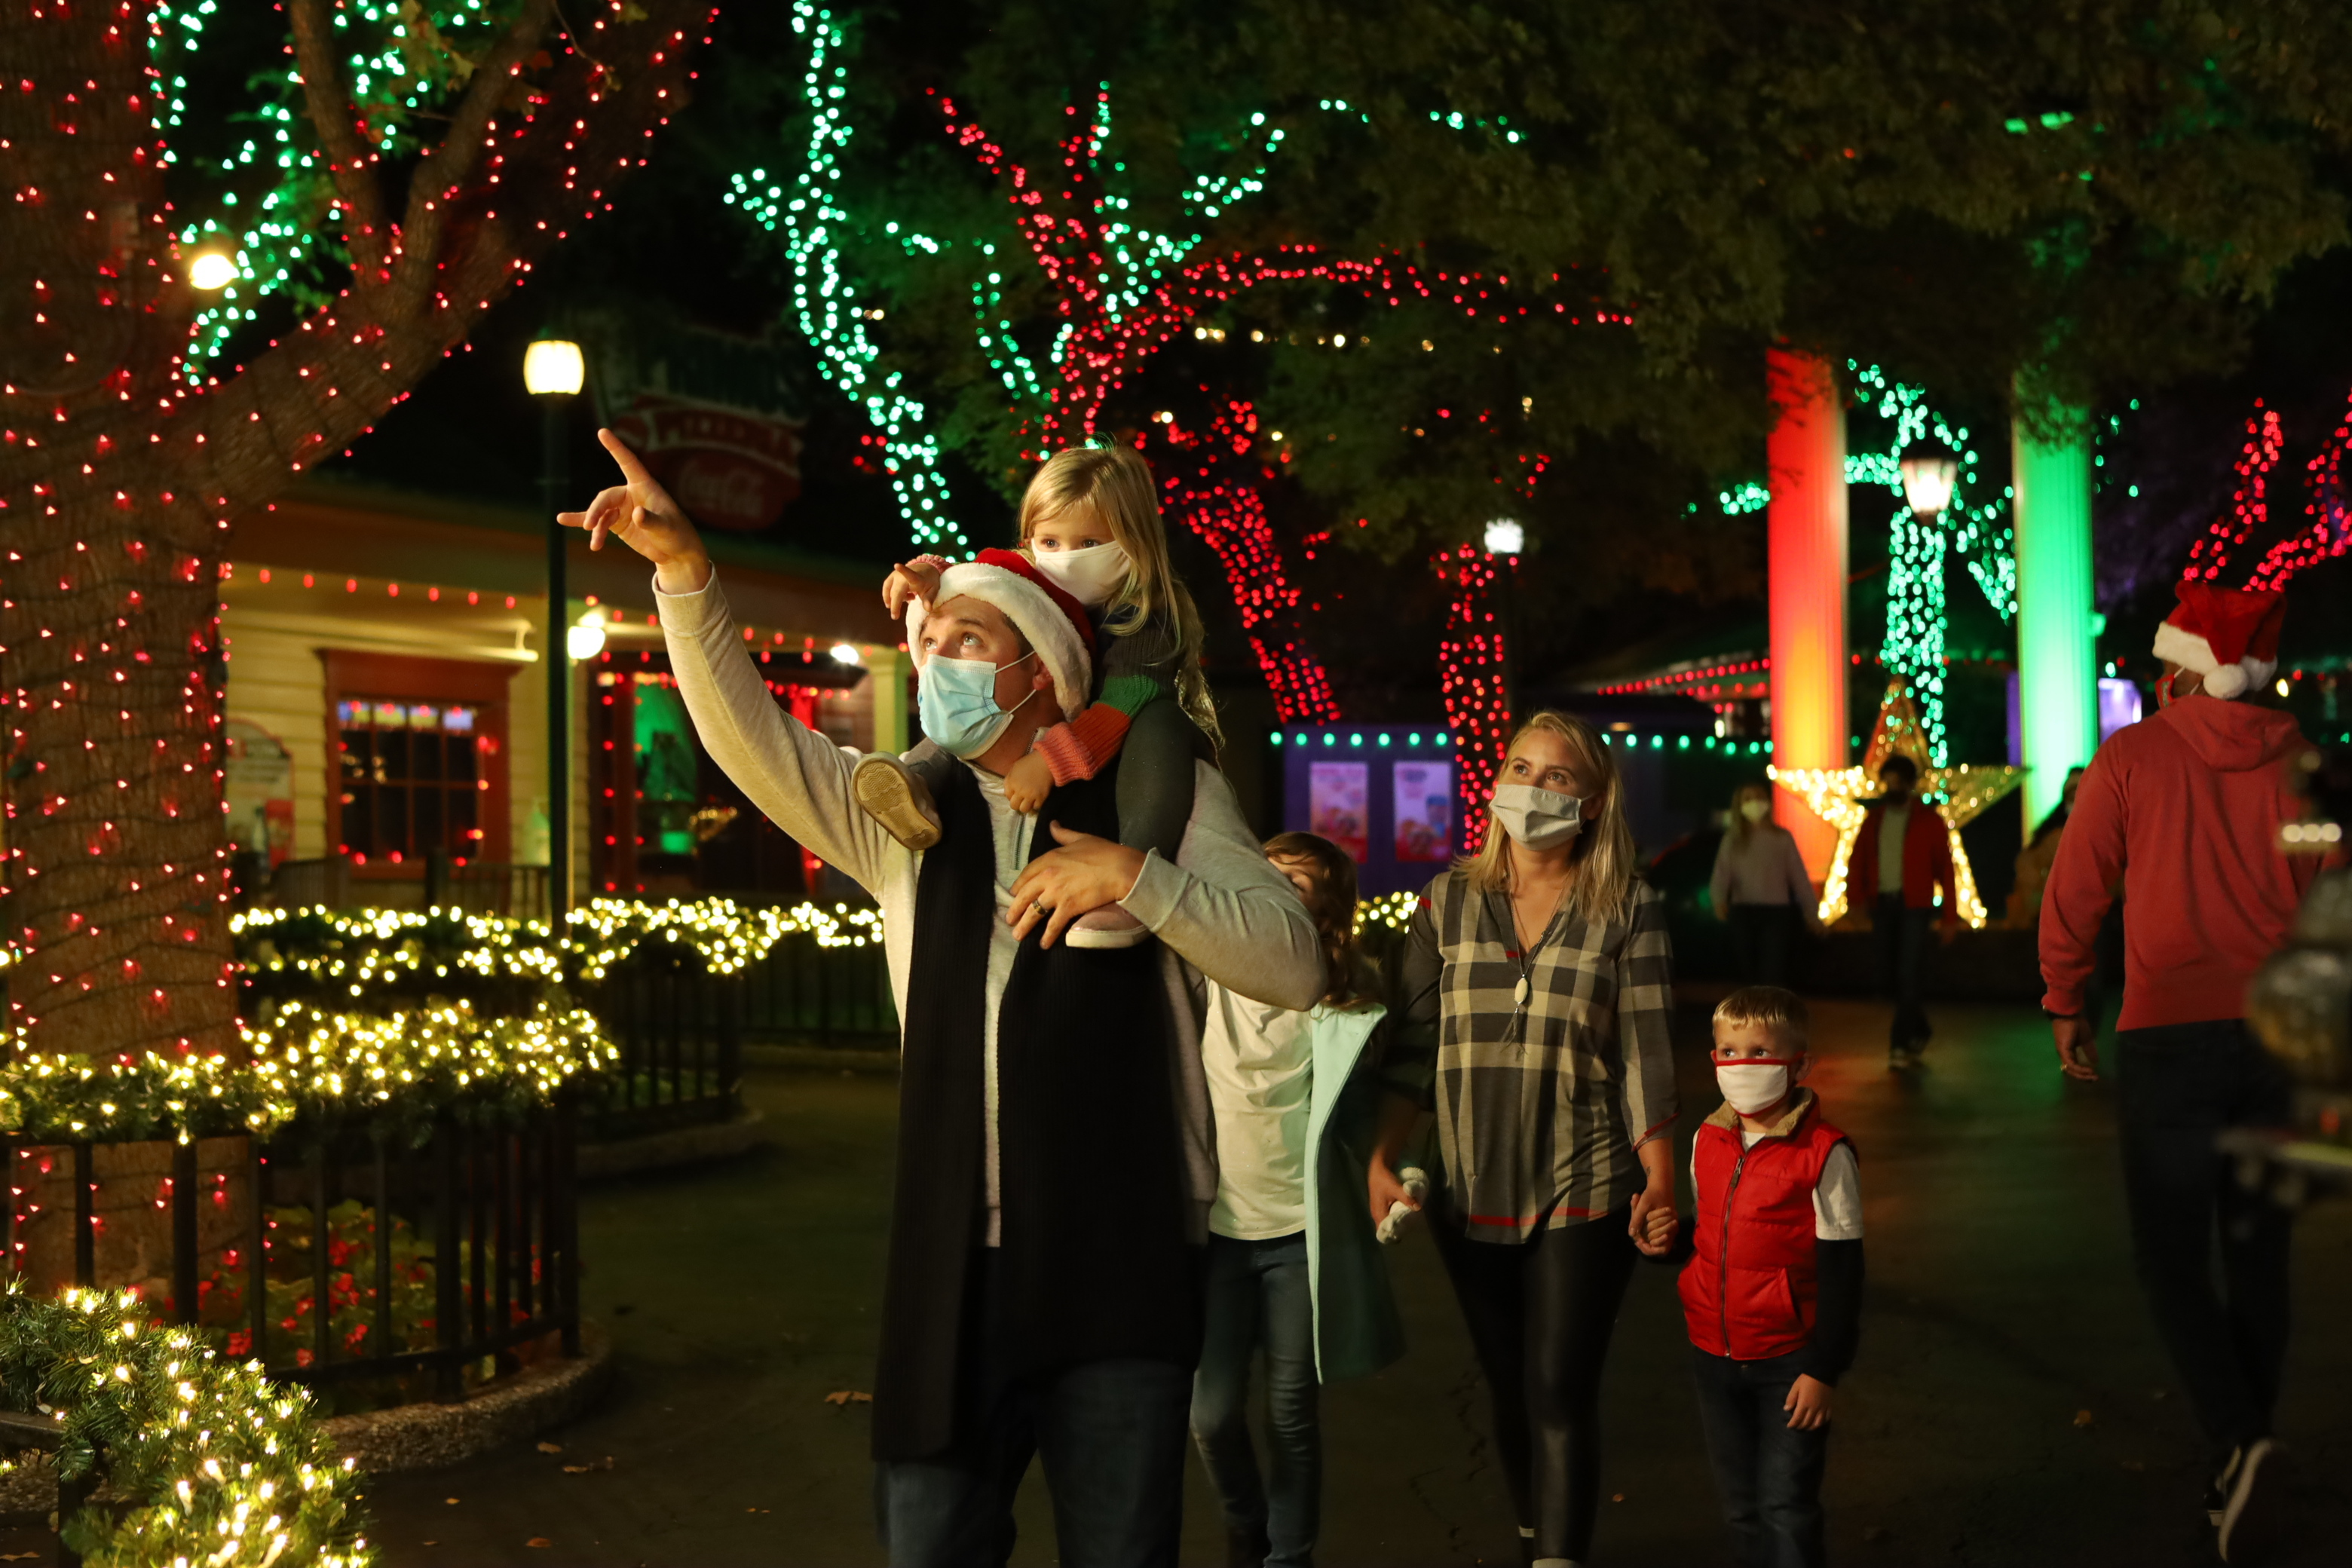 Fiesta Texas Christmas 2021 Holiday In The Park Returning To Six Flags Fiesta Texas With Christmas Lights Larger Than Life Props